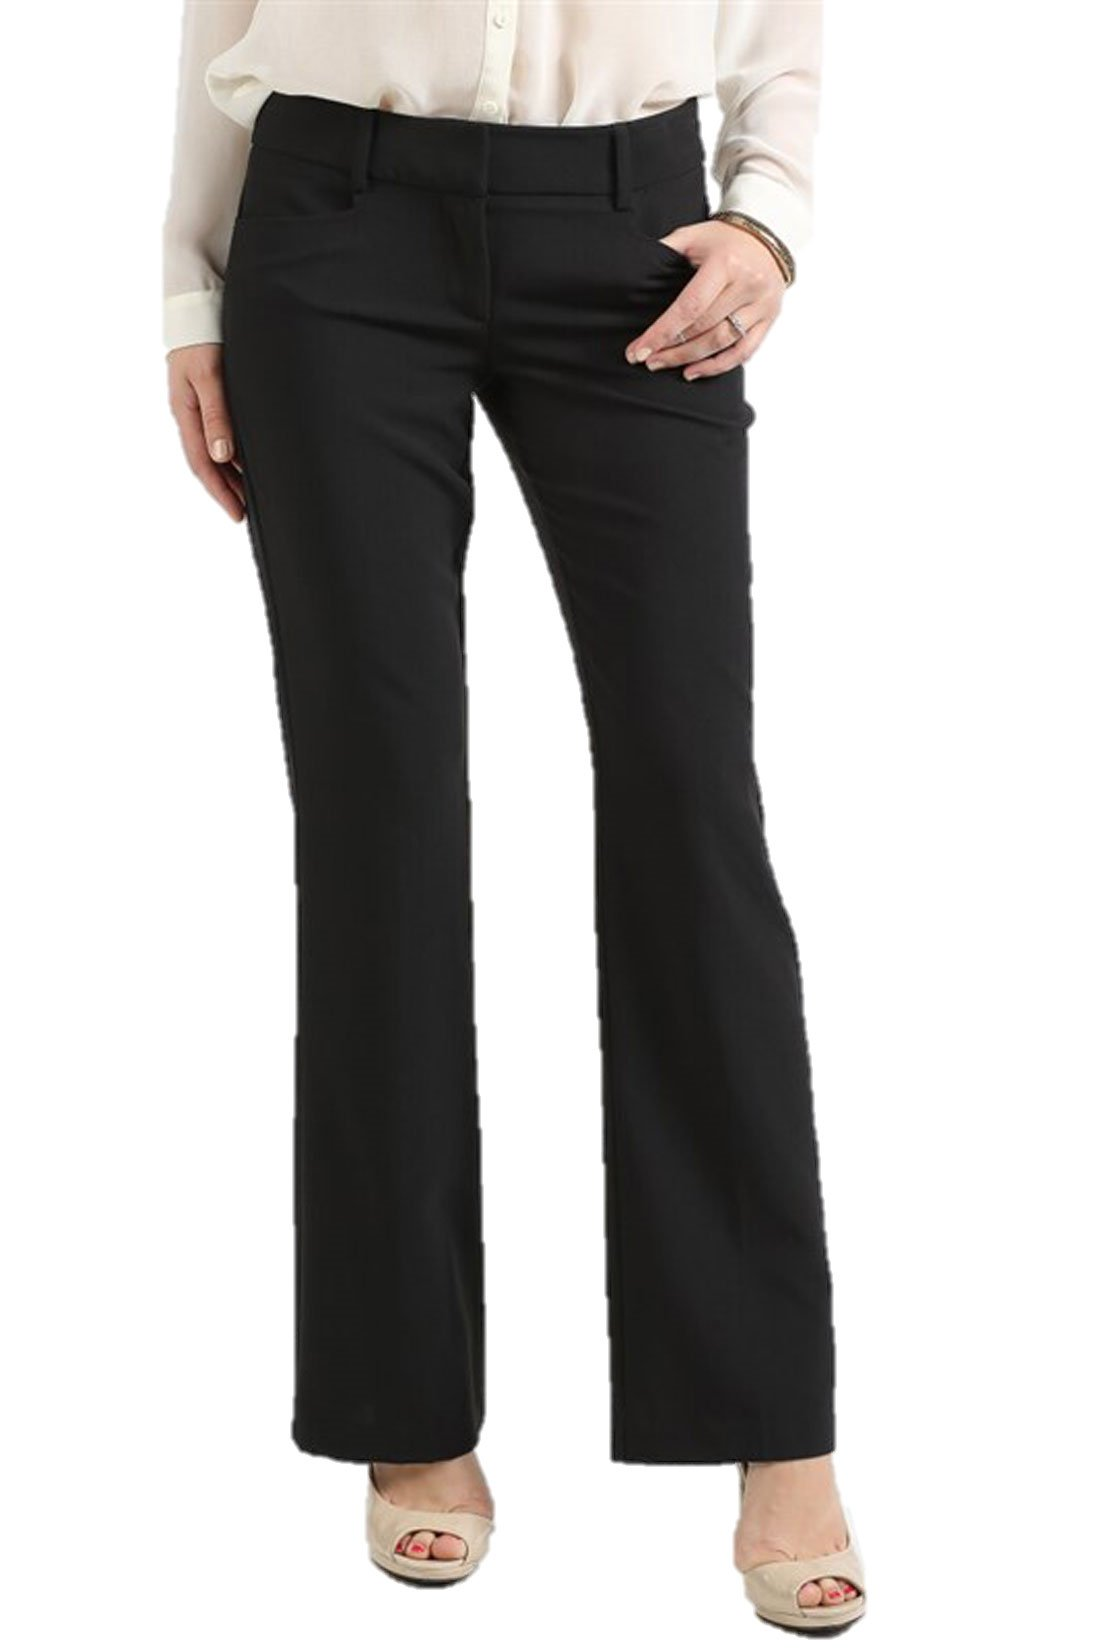 Ambiance Women's Bengaline Pants With Double Buttons Large Black Hidden BU